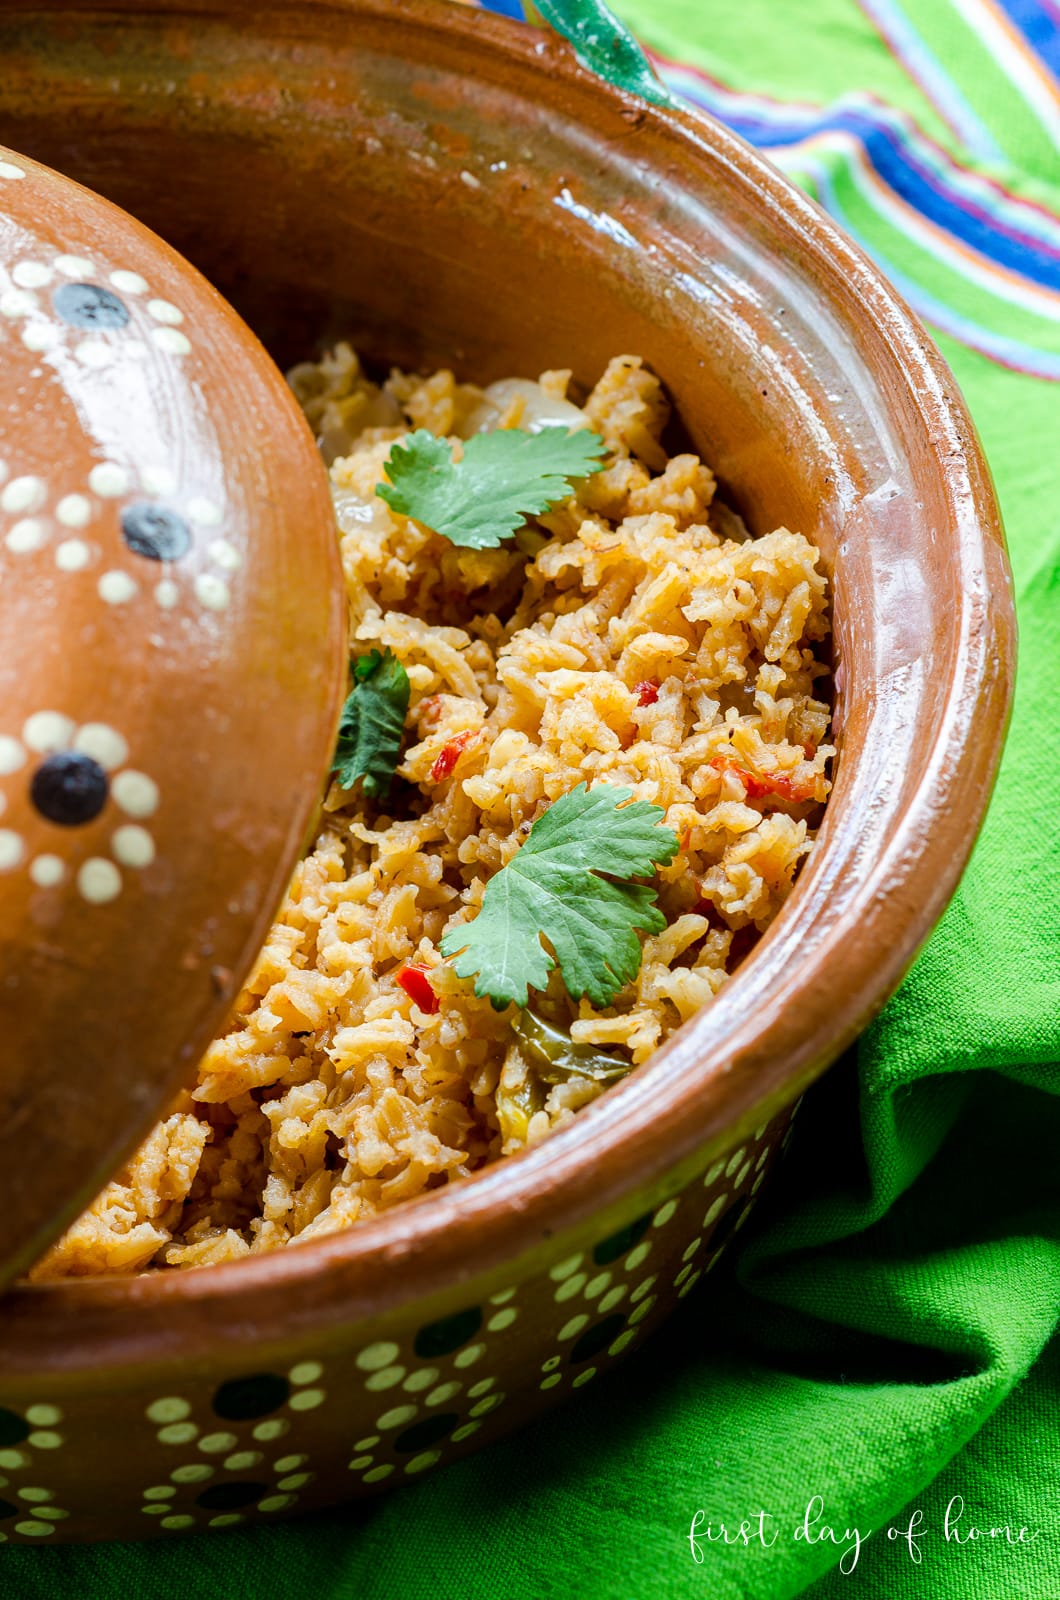 Spanish rice in traditional Mexican clay pot